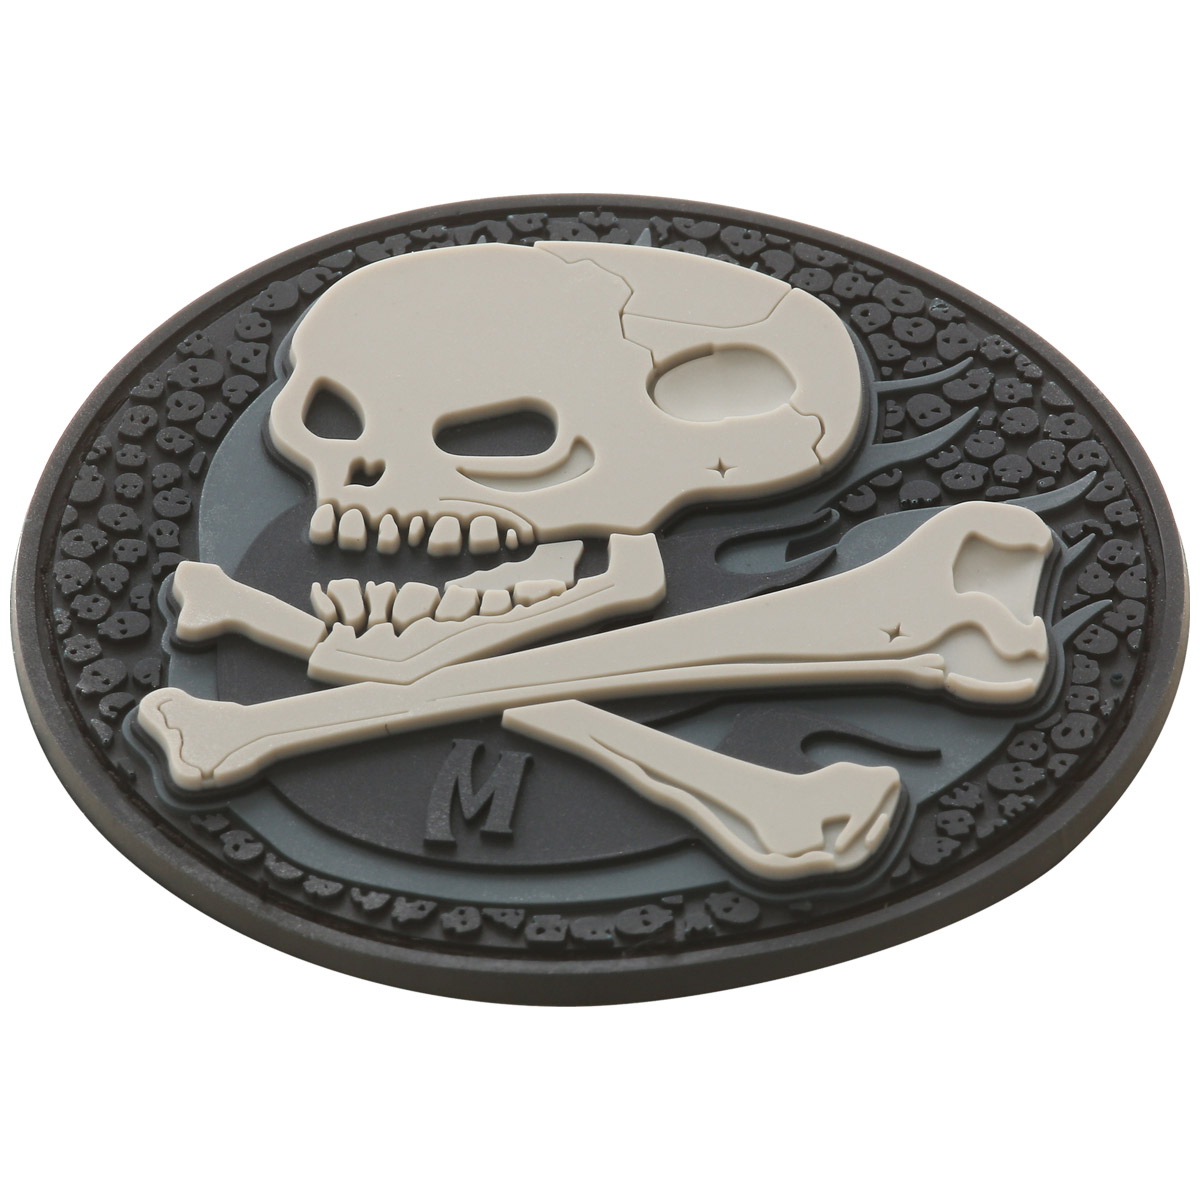 Maxpedition Skull Swat Morale Patch